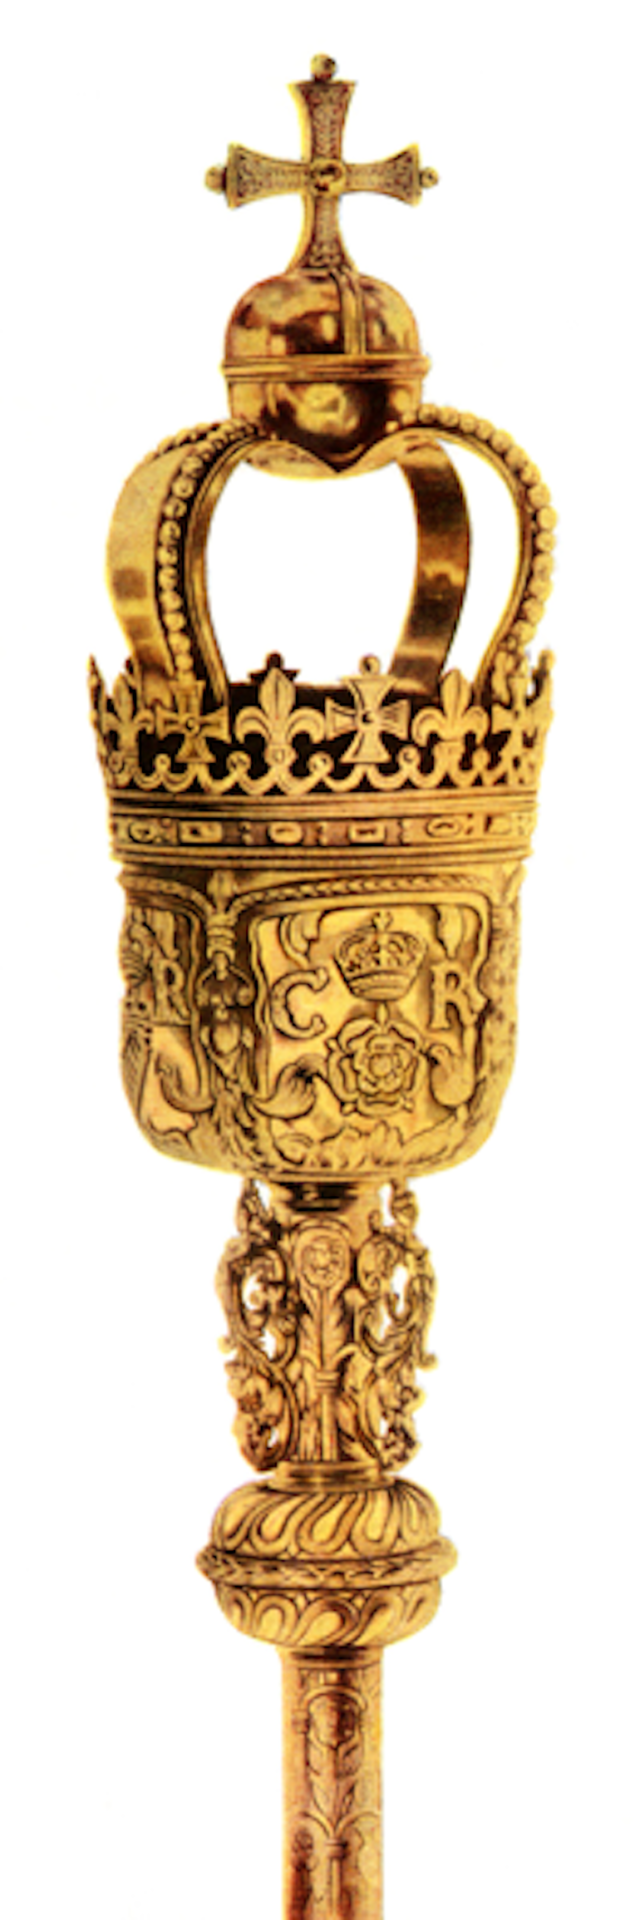 Top of one of the British ceremonial maces bearing the cypher of Charles II. Photo Credit: © Public Domain via Wikimedia Commons.